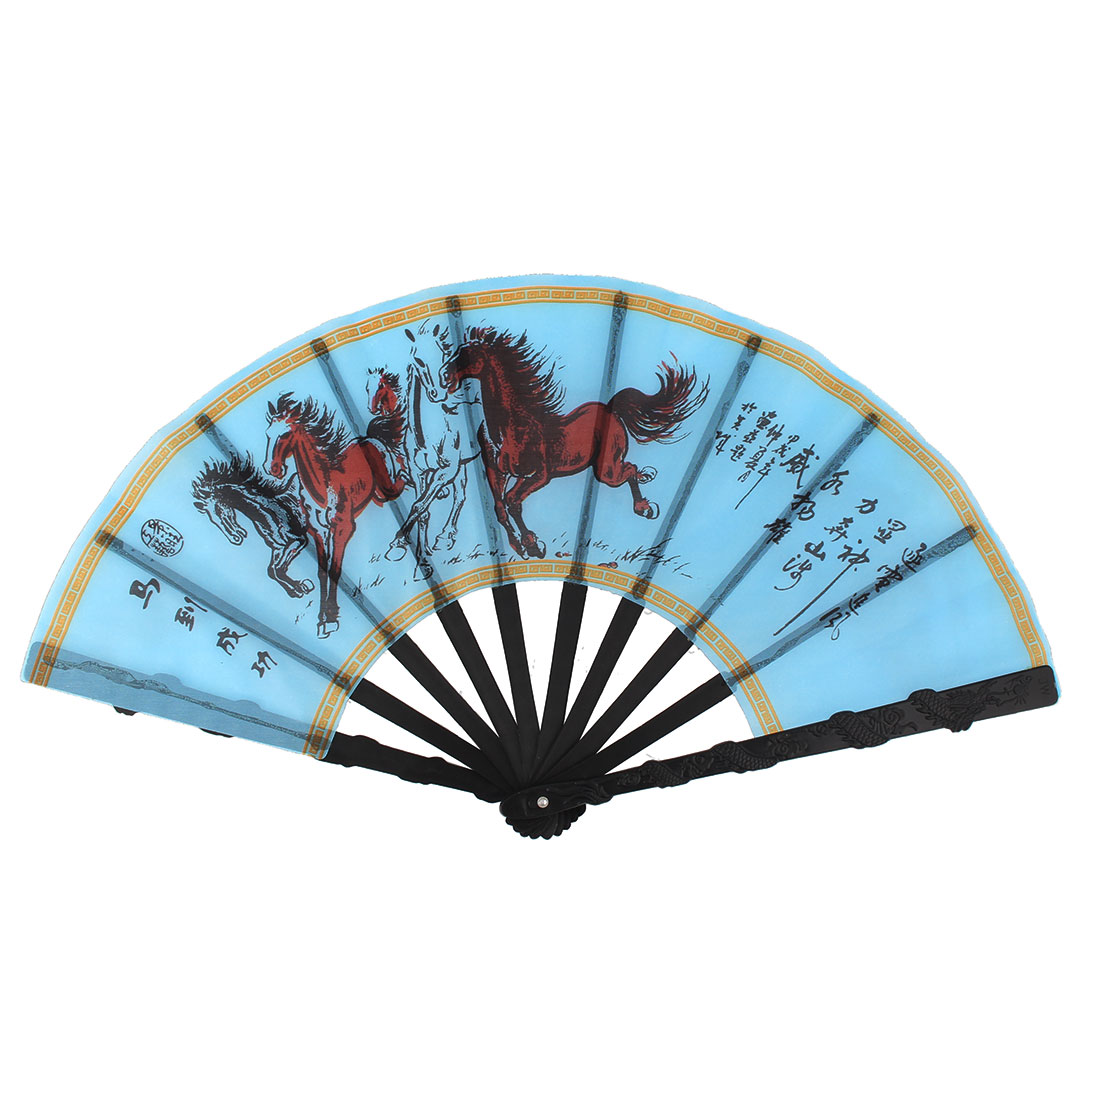 Plastic Ribs Horse Pattern Chinese Traditional Style Handheld Folding Fan